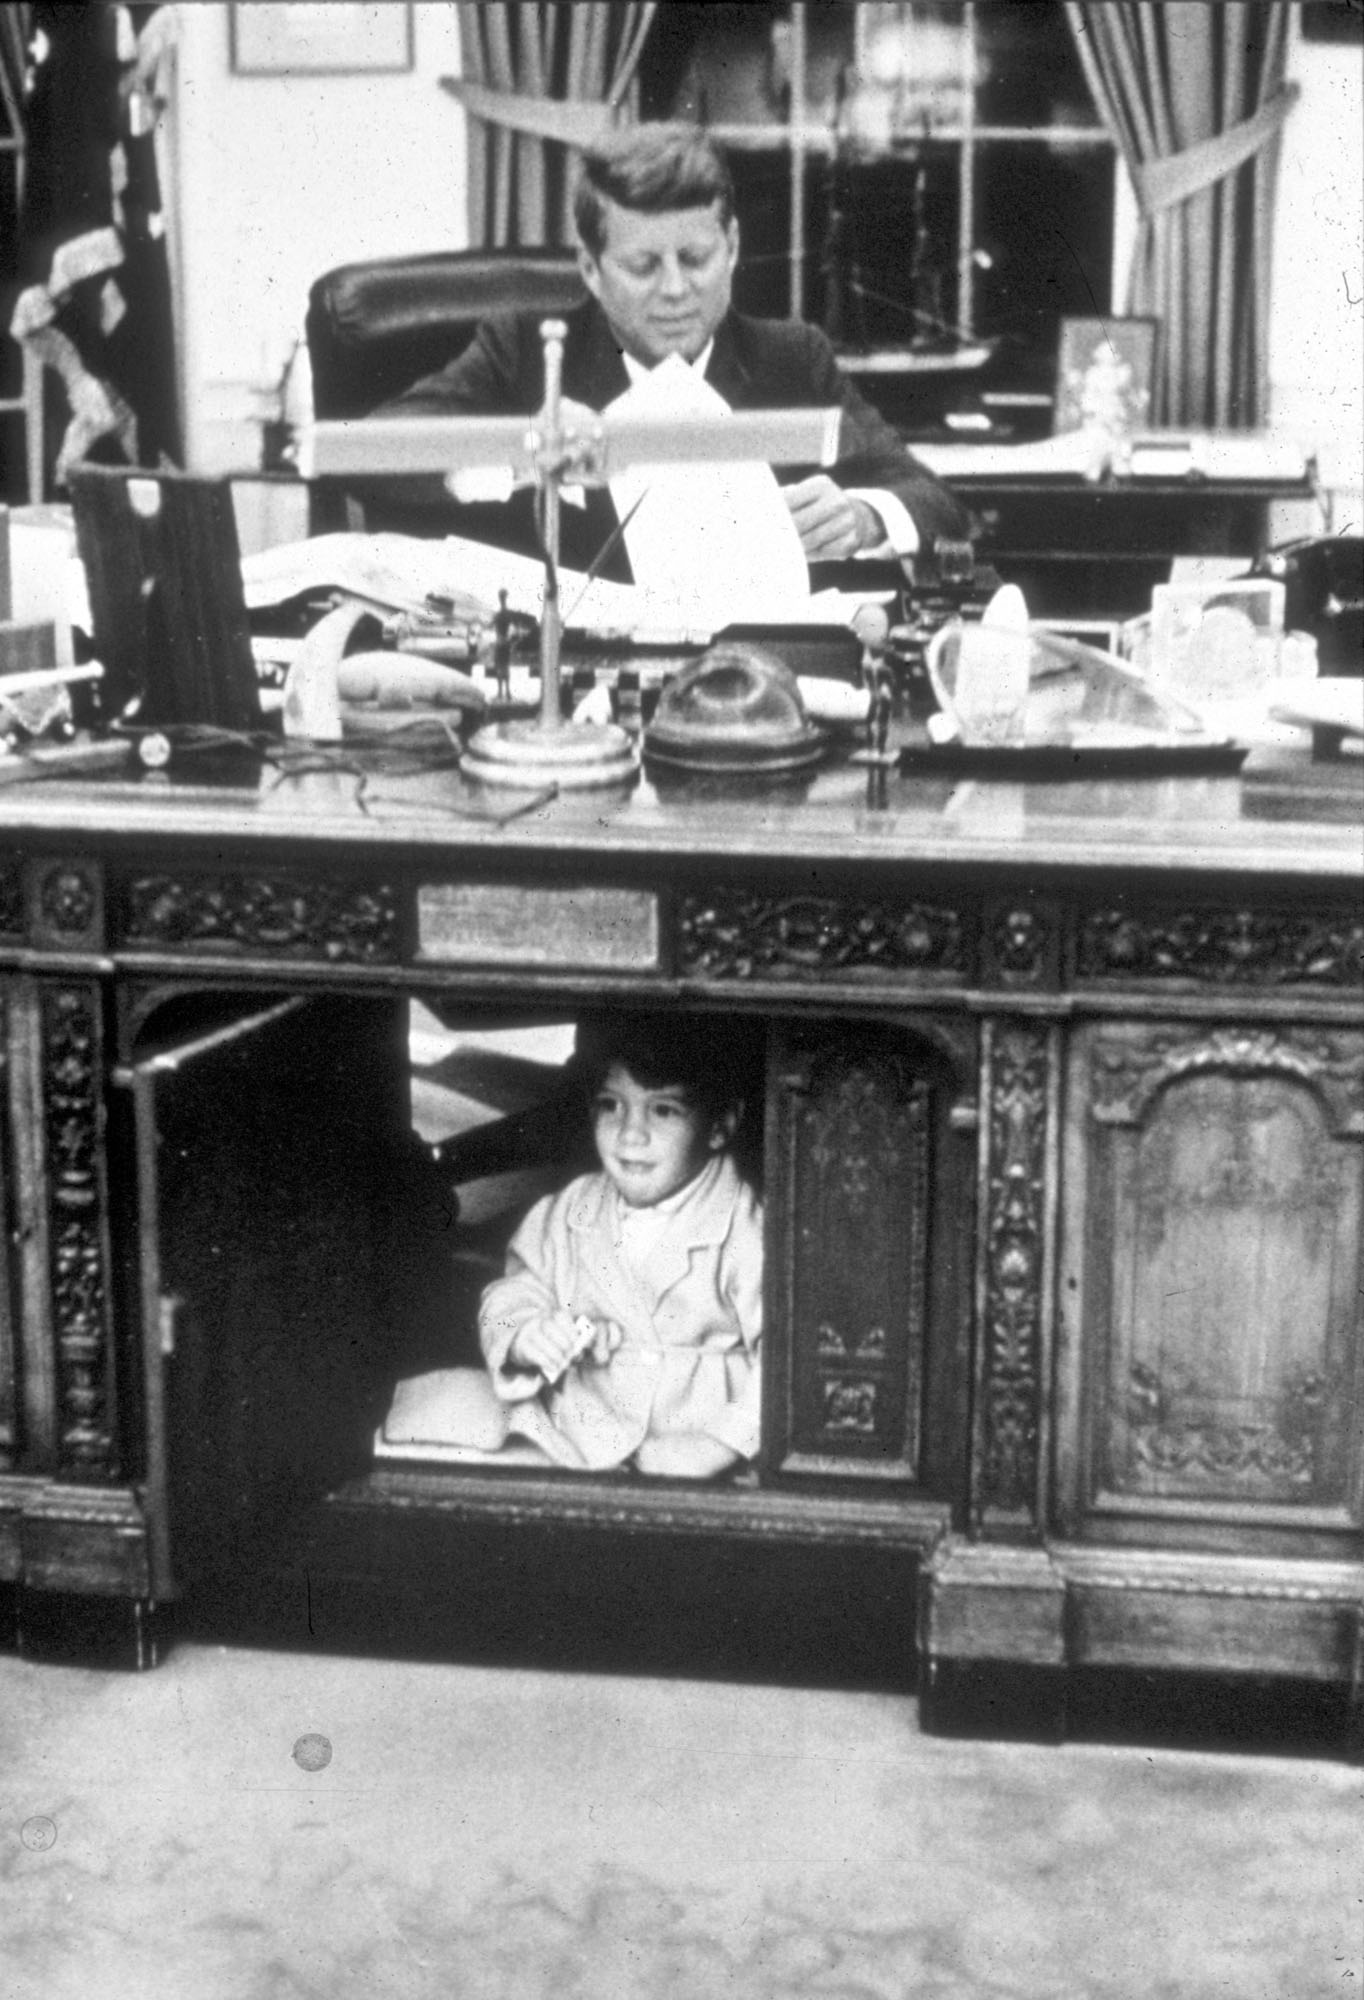 John Kennedy Jr. playing in the Oval Office